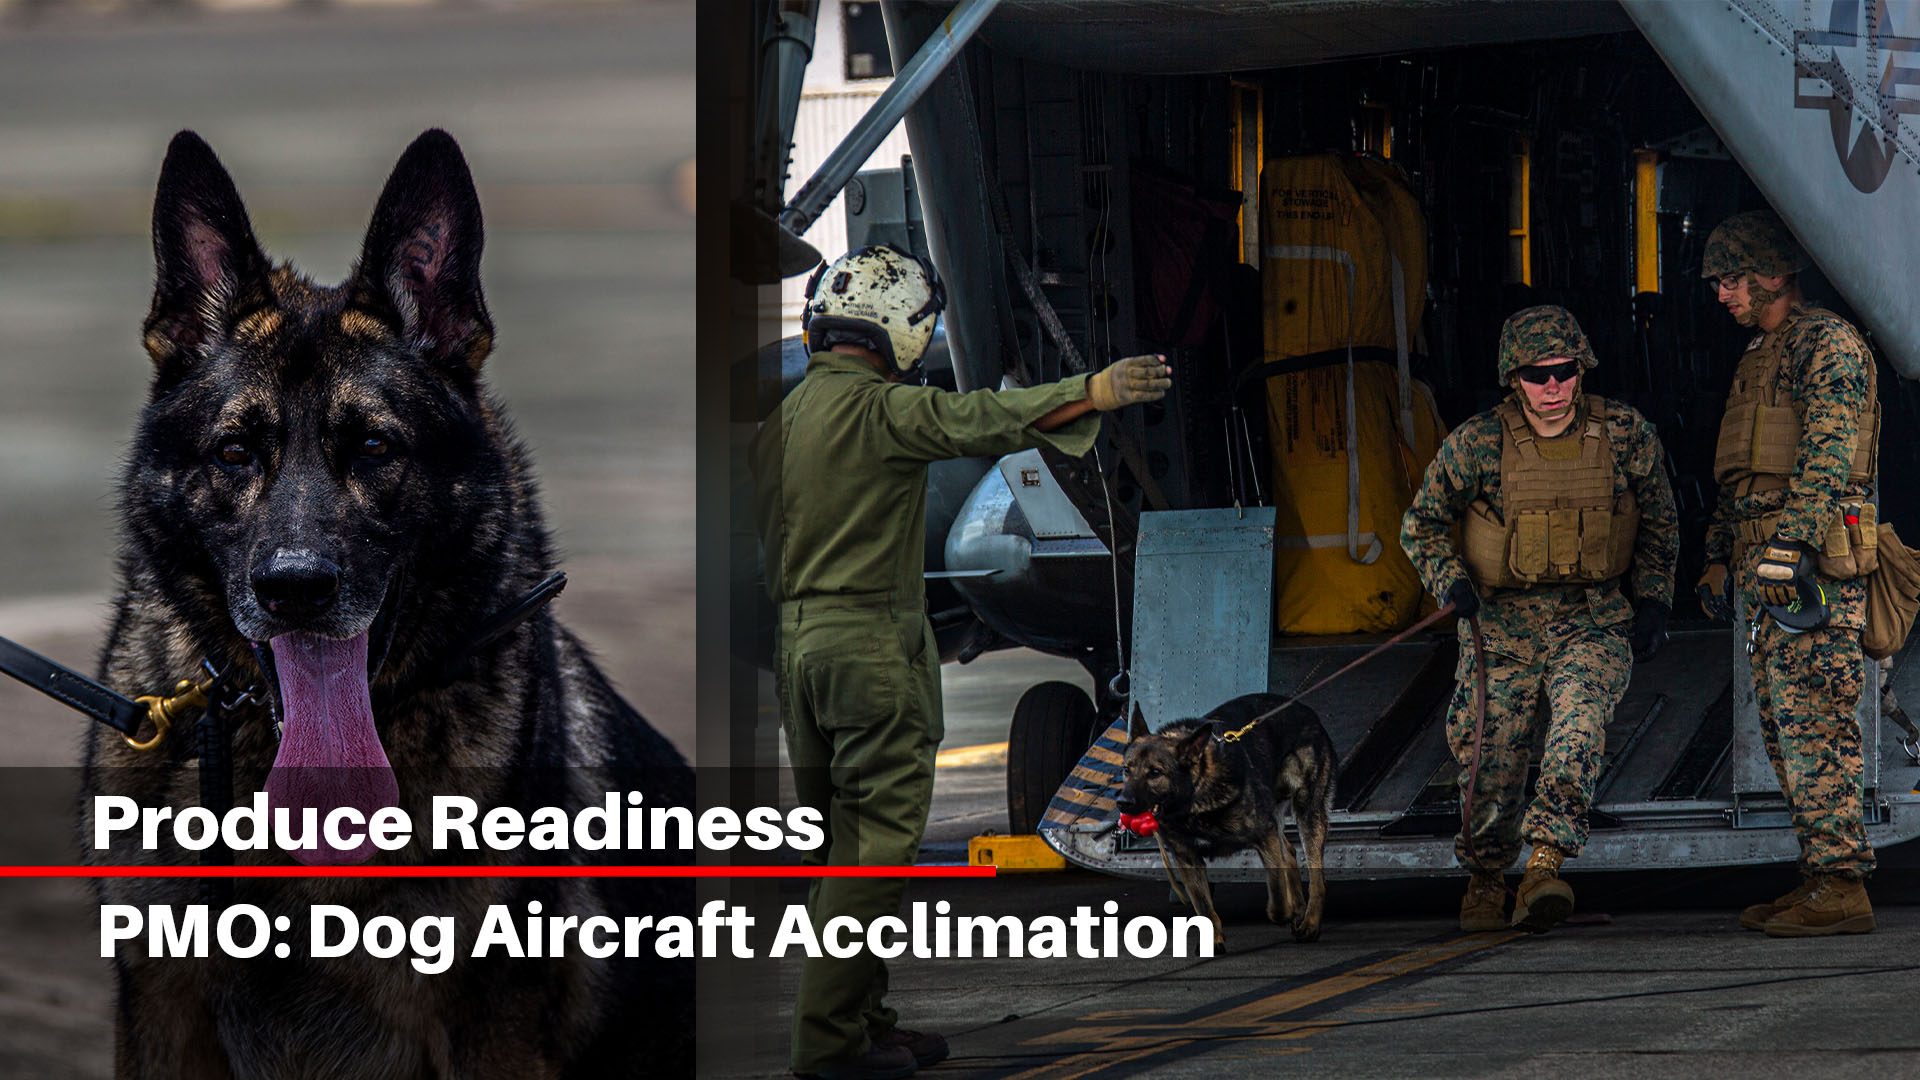 PMO: Dog aircraft acclimation